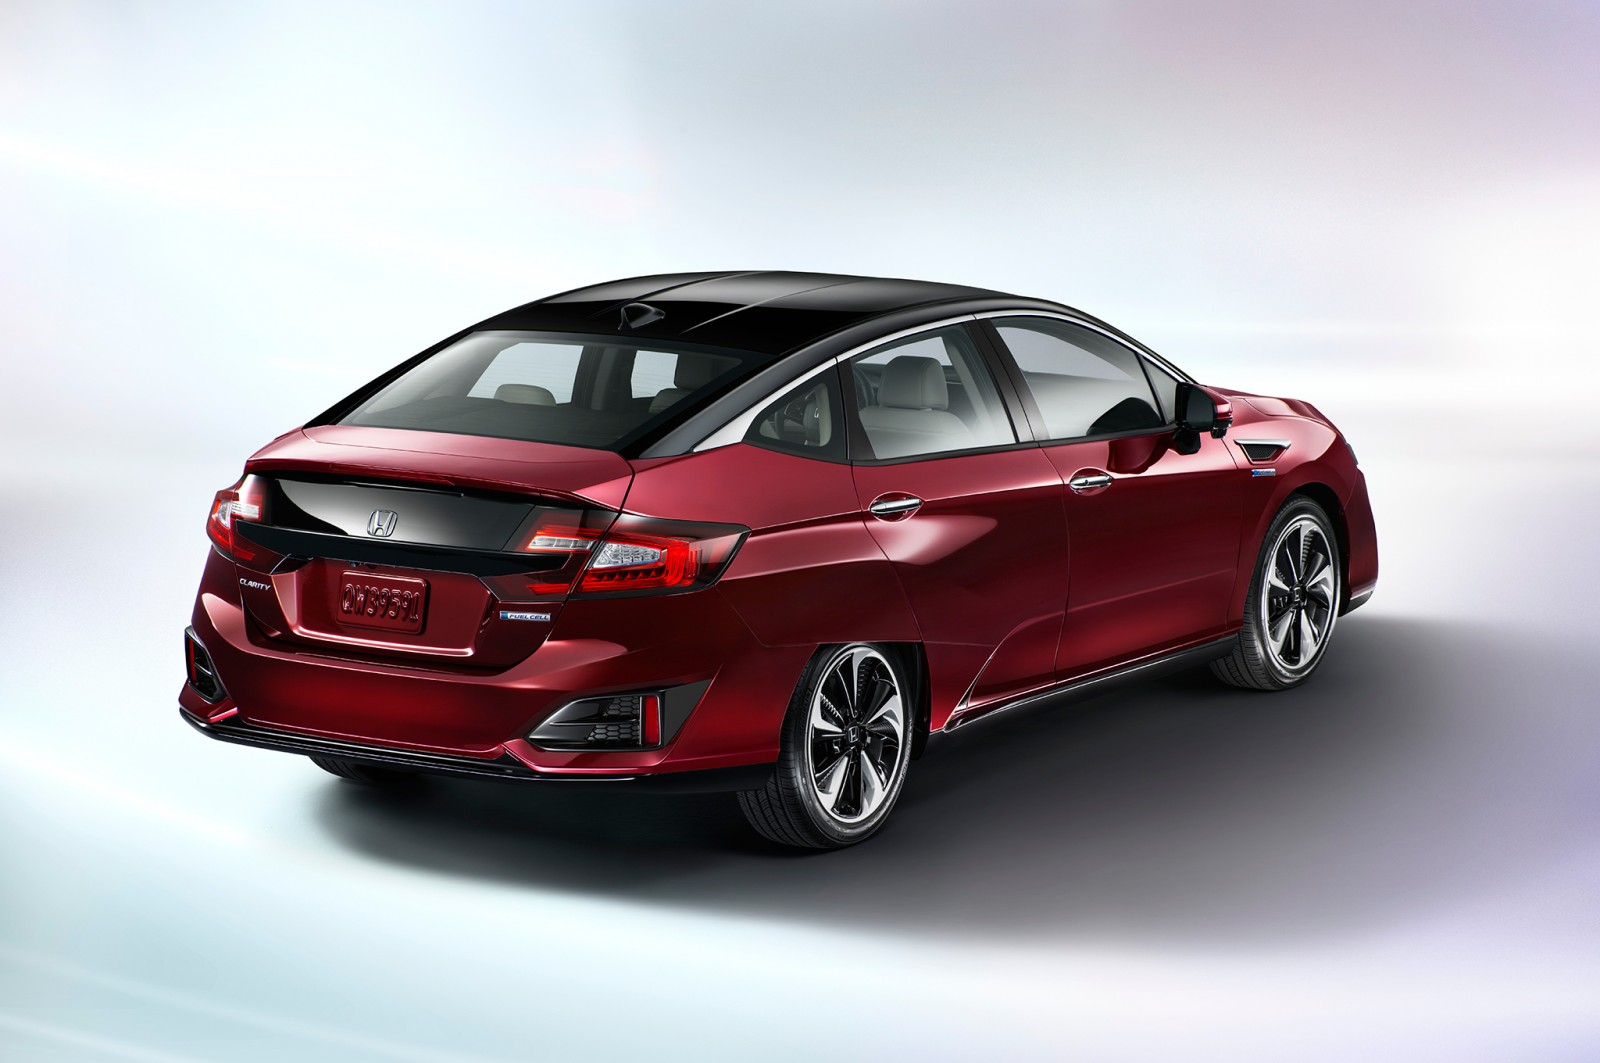 2017 Honda Clarity rear